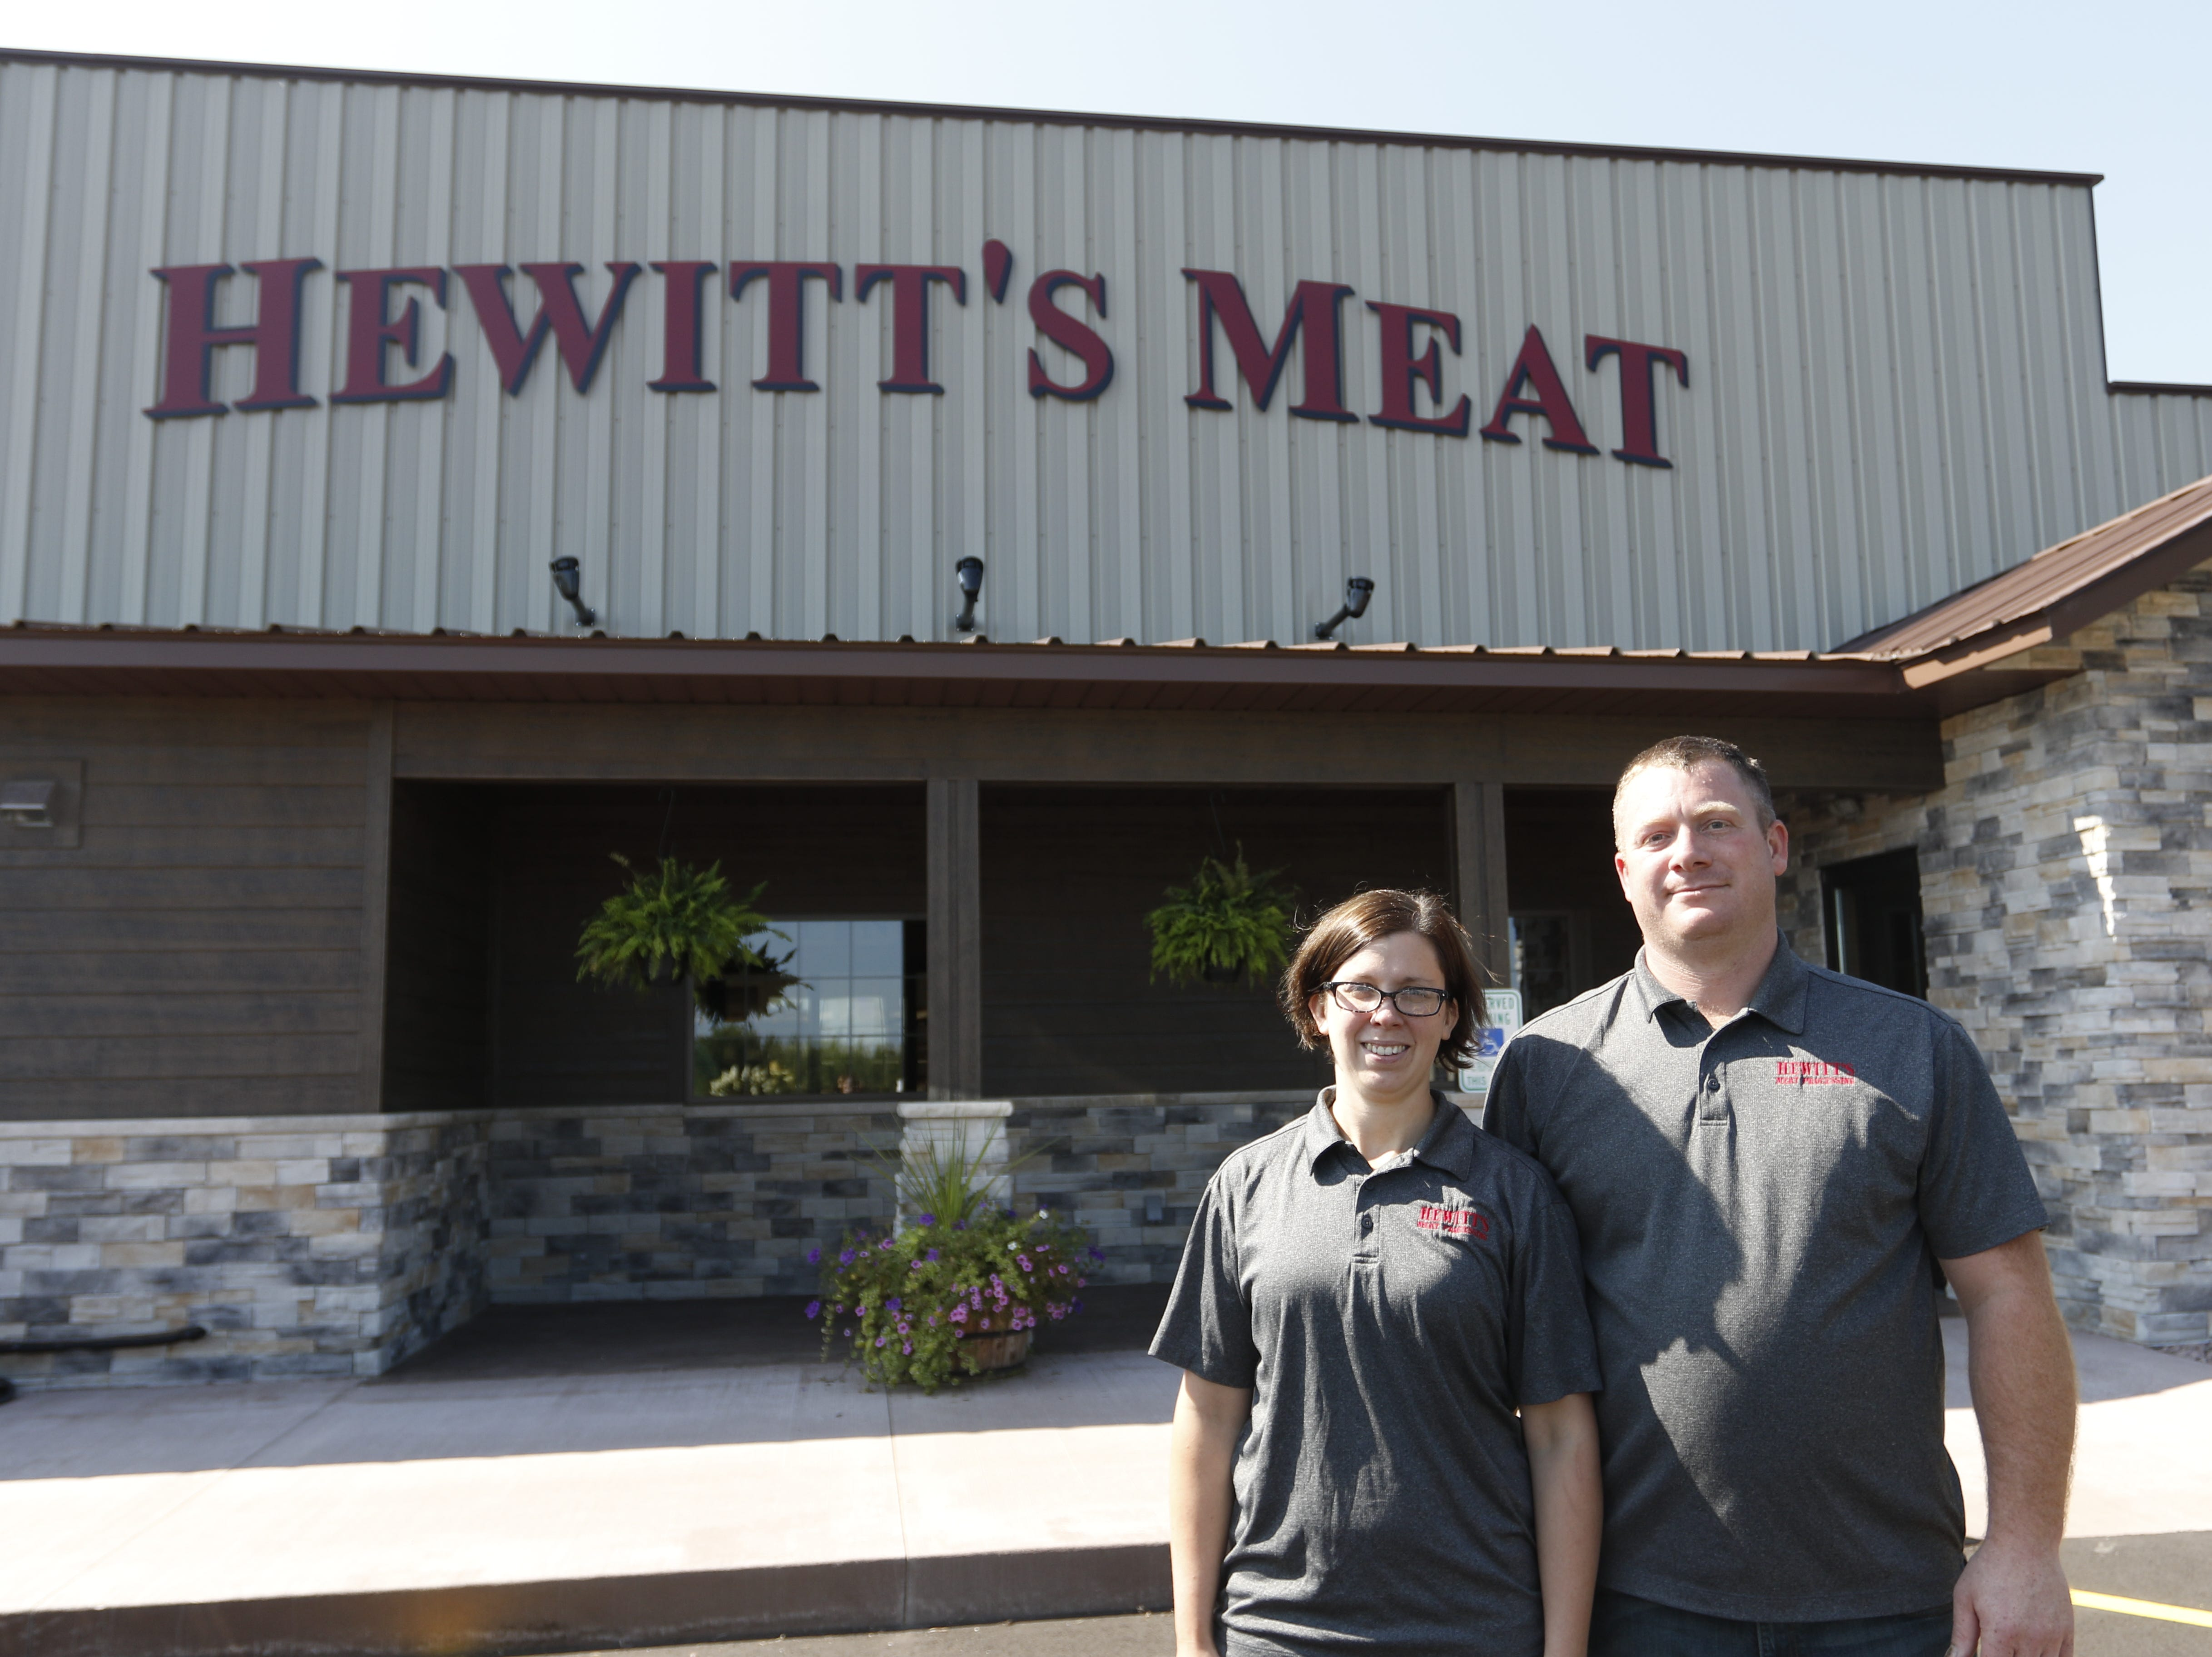 Owners Amanda and John Franseen stand in front of the new location of Hewitt's Meat, 210 Downwind Drive, Marshfield Tuesday, July 31, 2018.